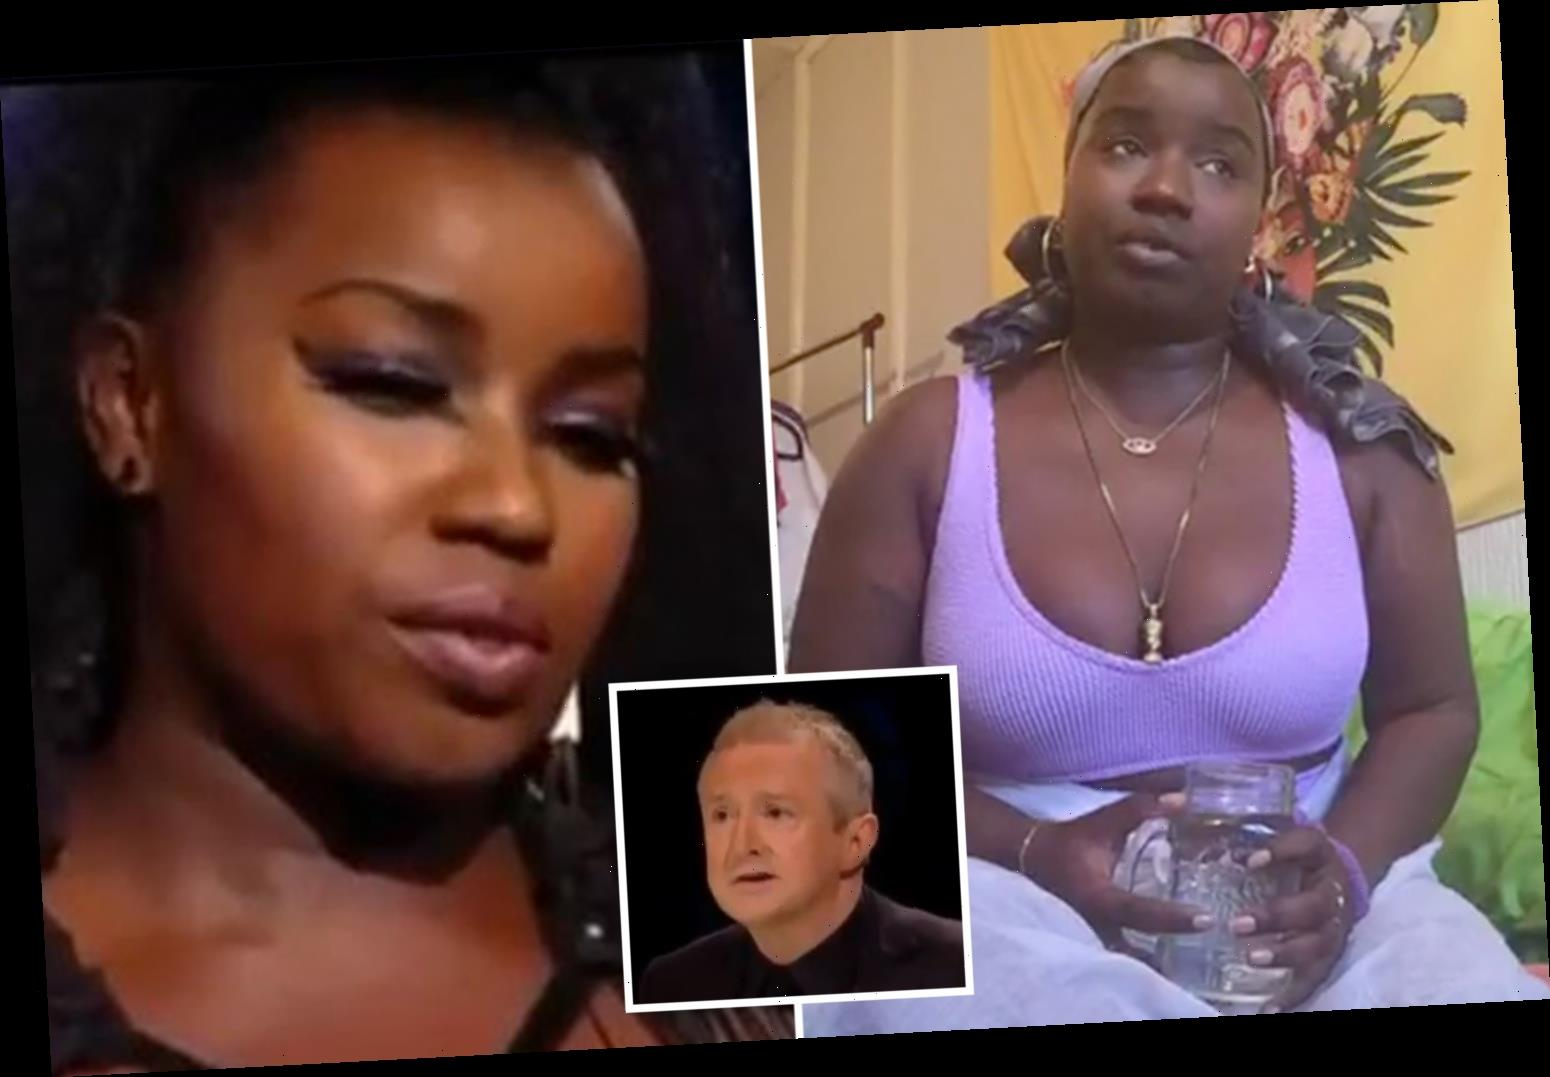 X Factor's Misha B says she felt suicidal after show judges called her 'a bully' live on TV – The Sun